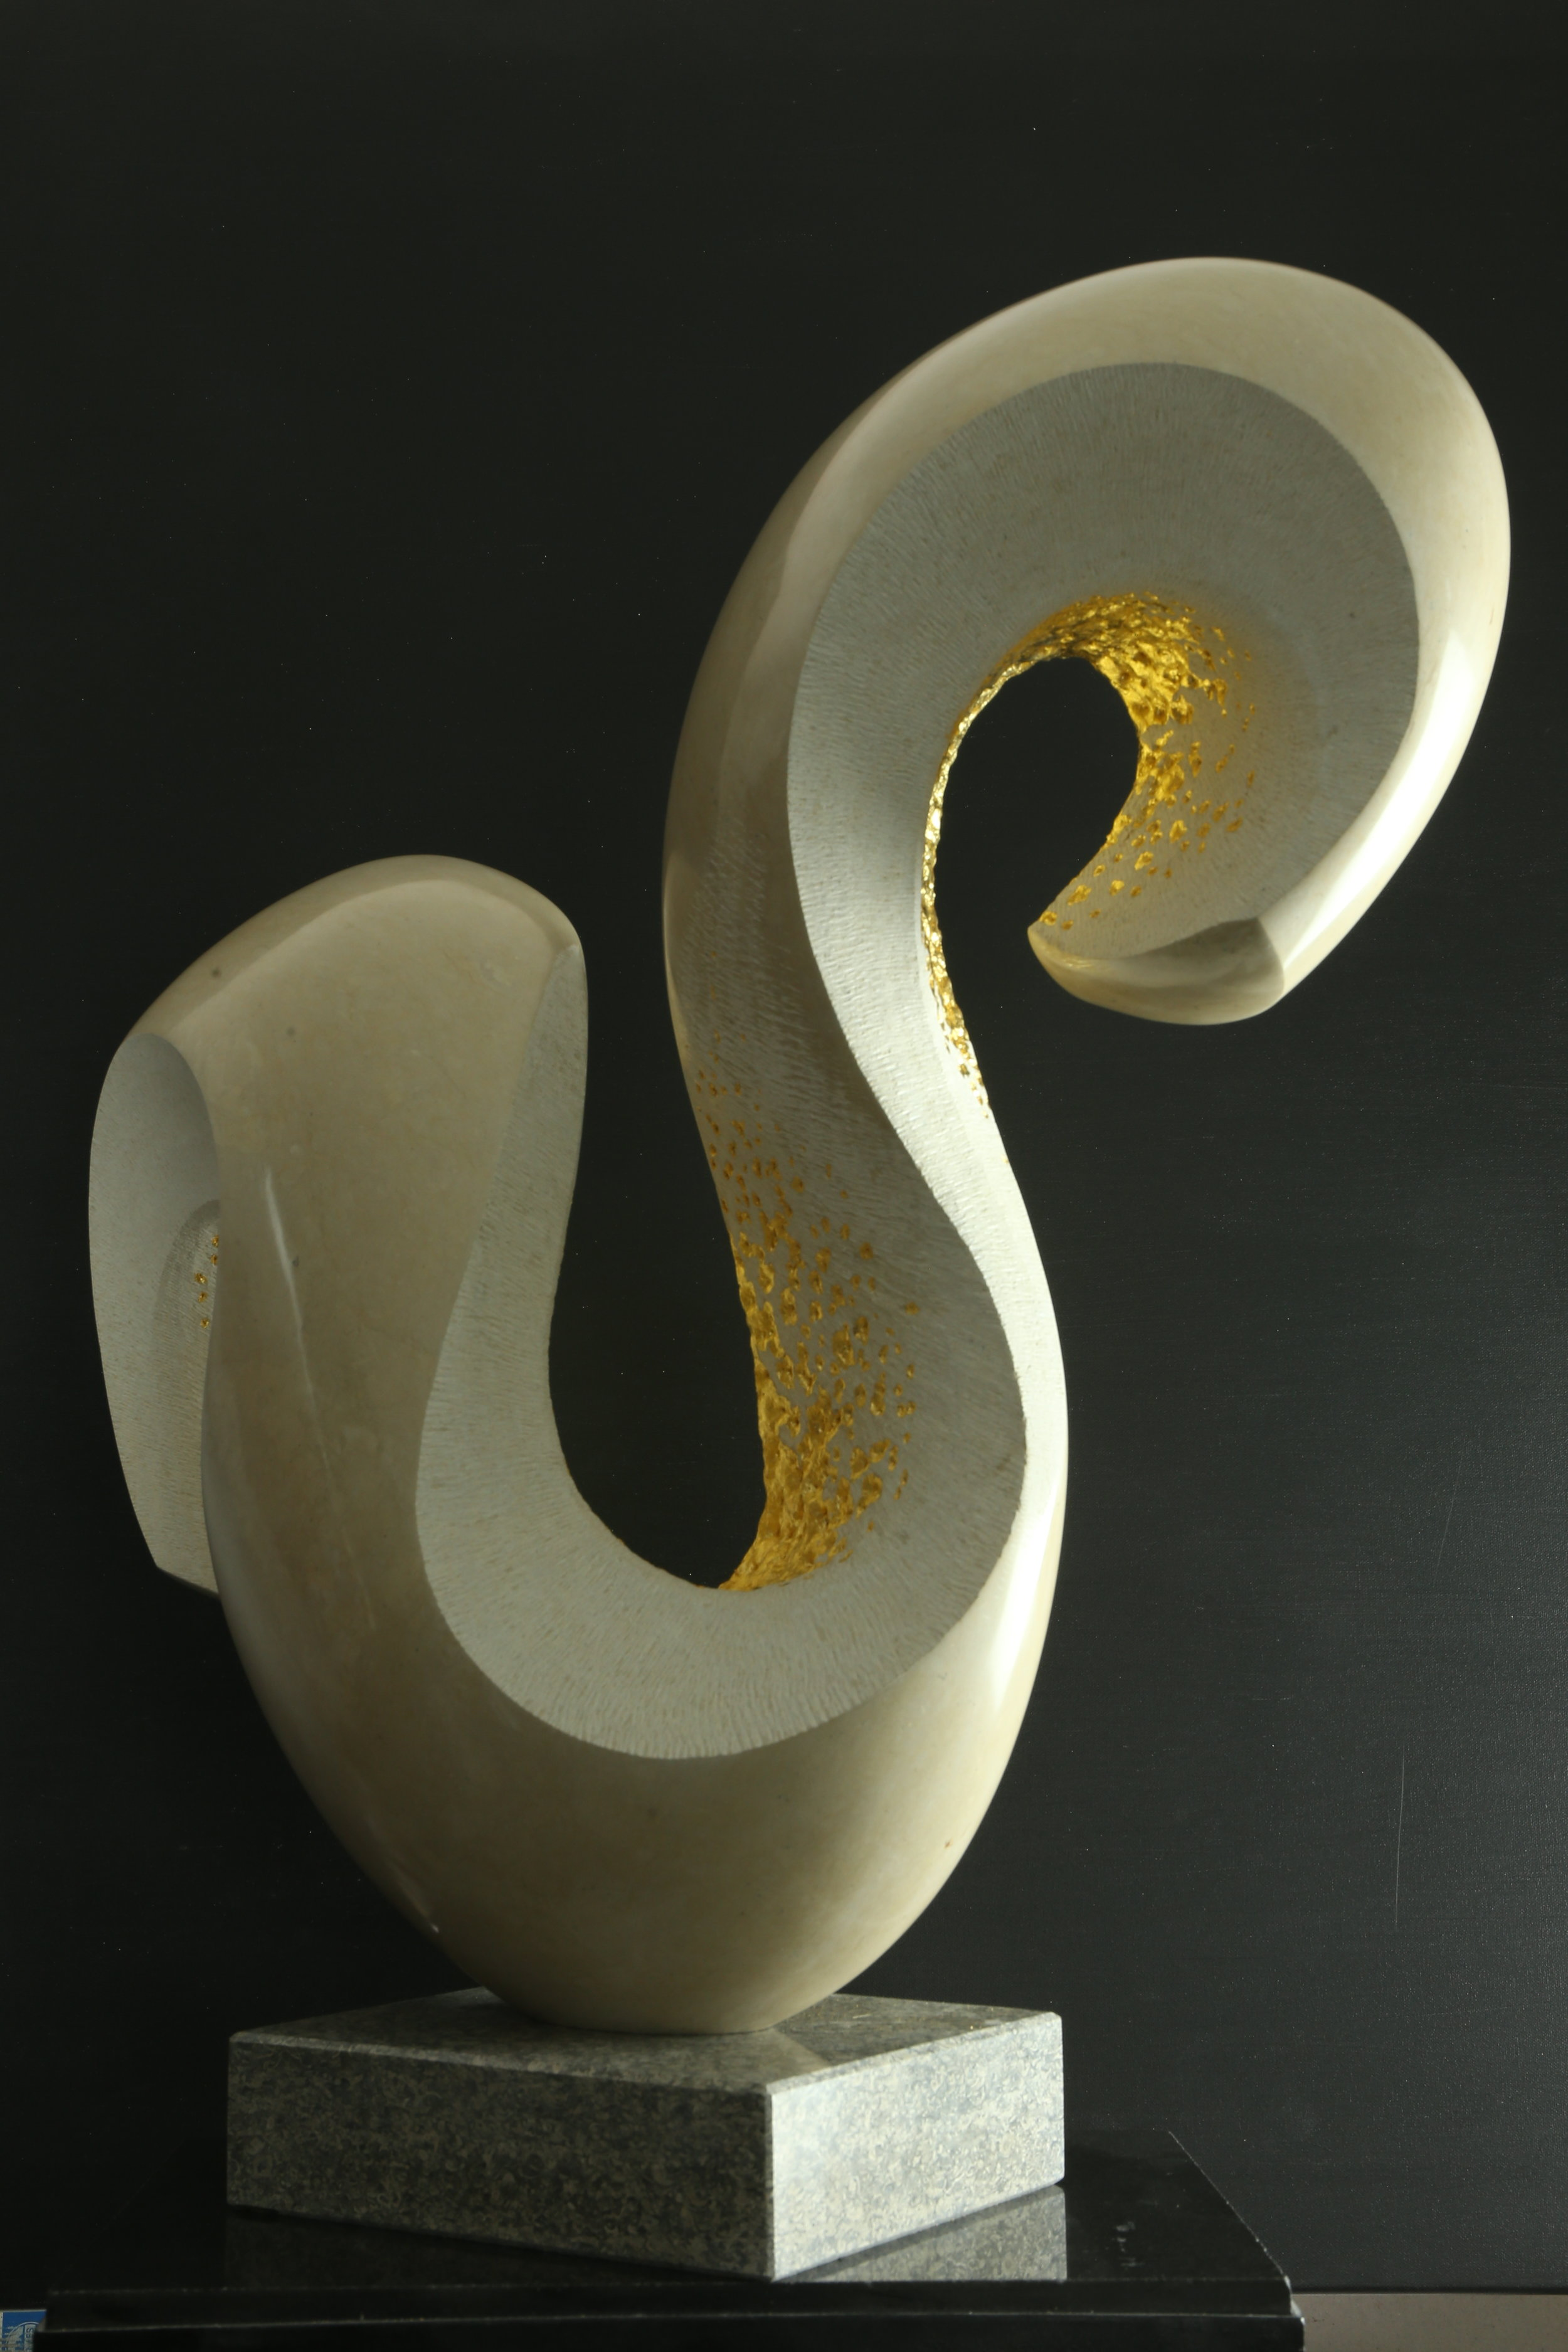 Michael Thacker - MANTLEThala Limestone and Gold Leaf Sculpture£6,000.0020% deposit - £1200.00Balance - £4800.008 Monthly Payments of £600.00Interest Free!